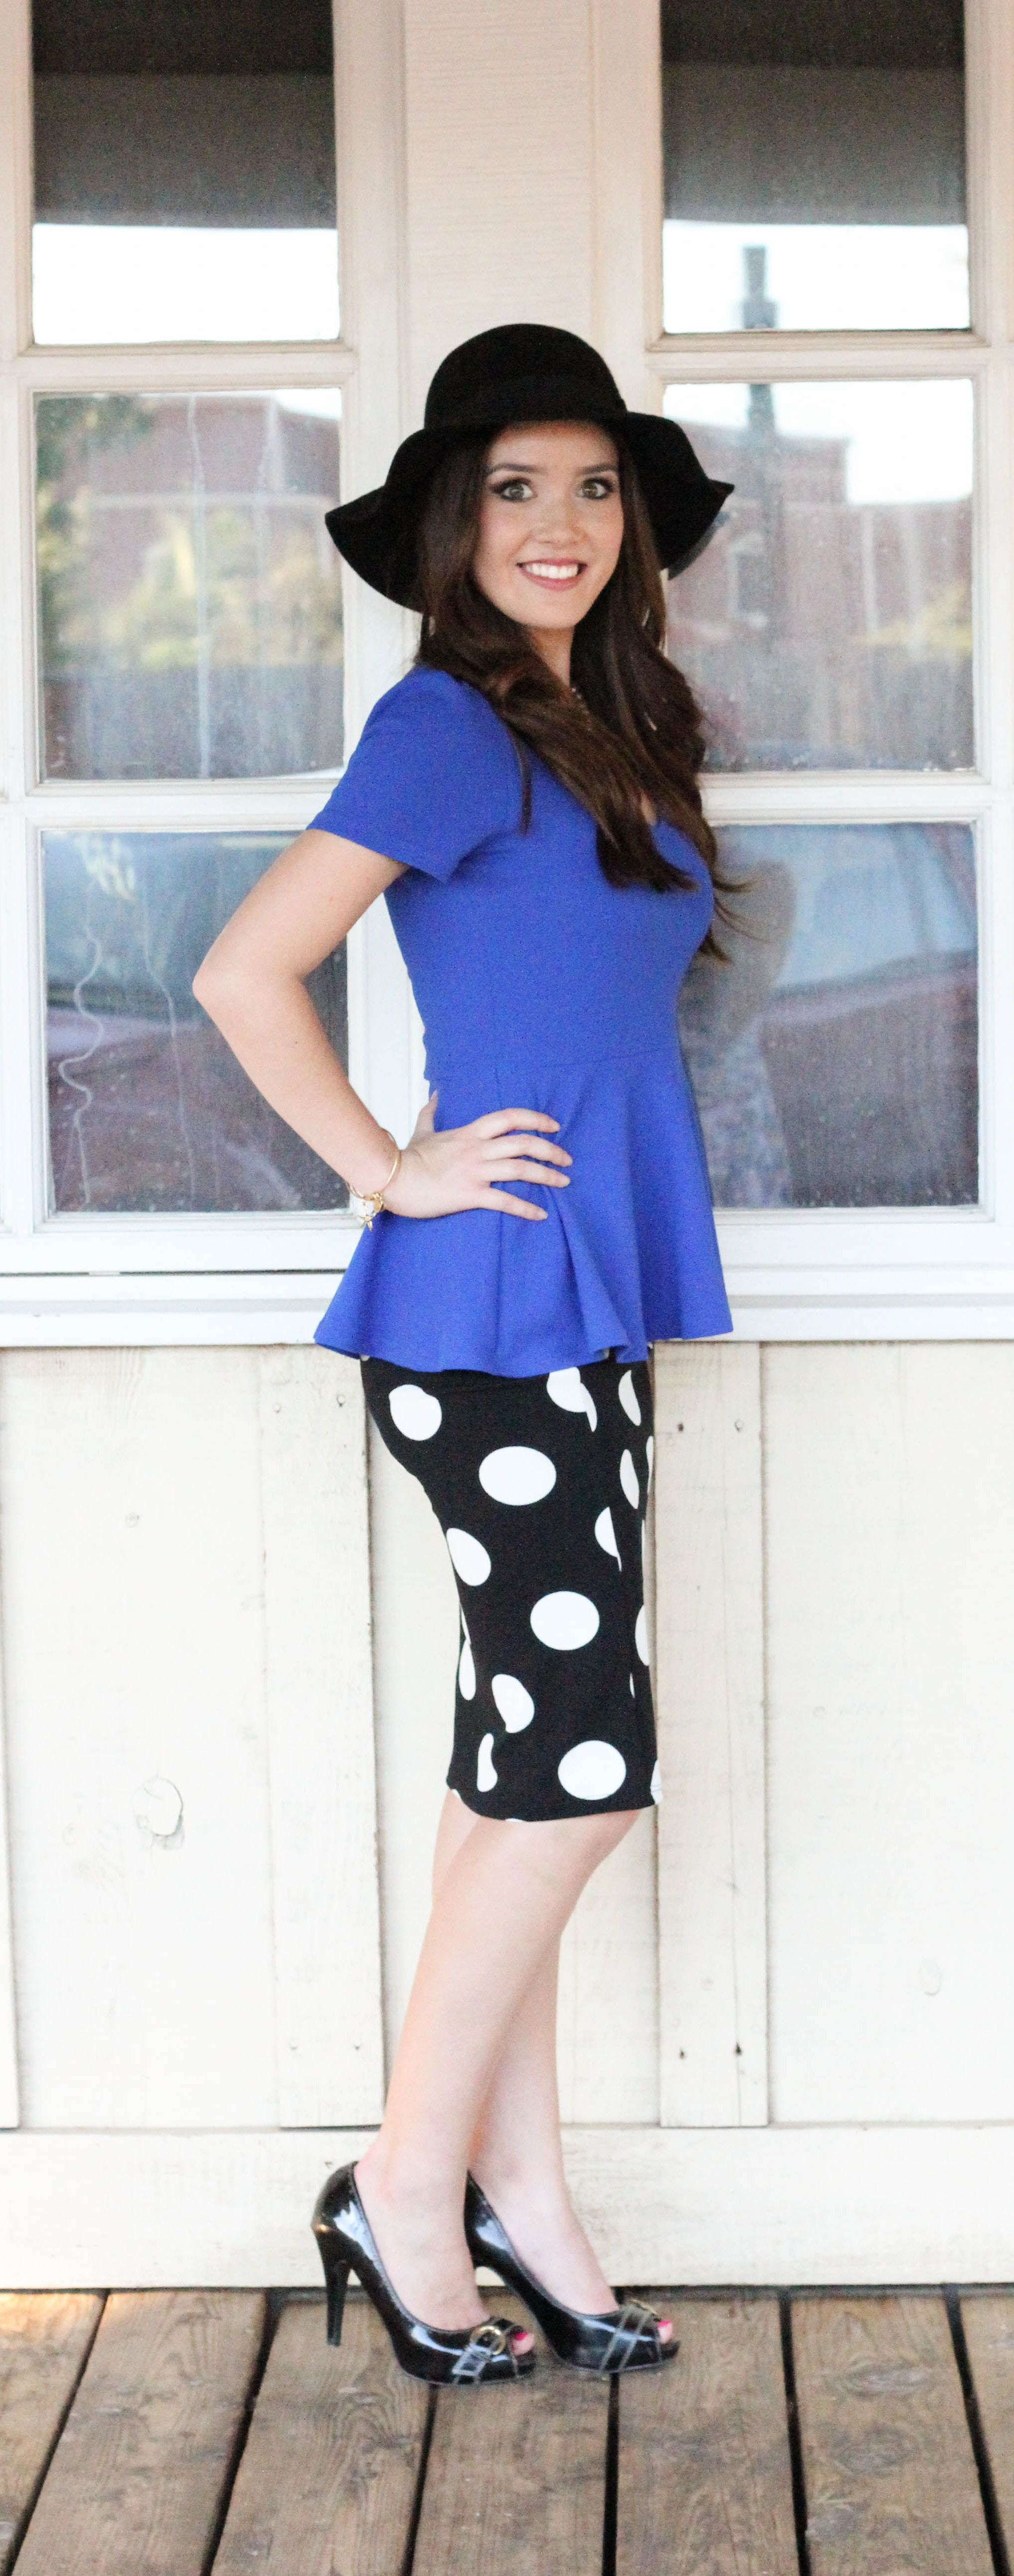 Who can resist a playful big polka dots print? This polka dot pencil skirt is feminine and figure flattering for any body type.Tuck in a bright tee for a fun casual look or dress it up with a darling top for a glam look! Any way you wear it, you will be on-trend cause polka dots very go outta style! Polka Dots/ Polka Dot Skirt/ Pencil Skirt/ Polka Dot Pencil Skirt/ Midi Skirt/ Polka Dot Midi Skirt. #willowblaireboutique